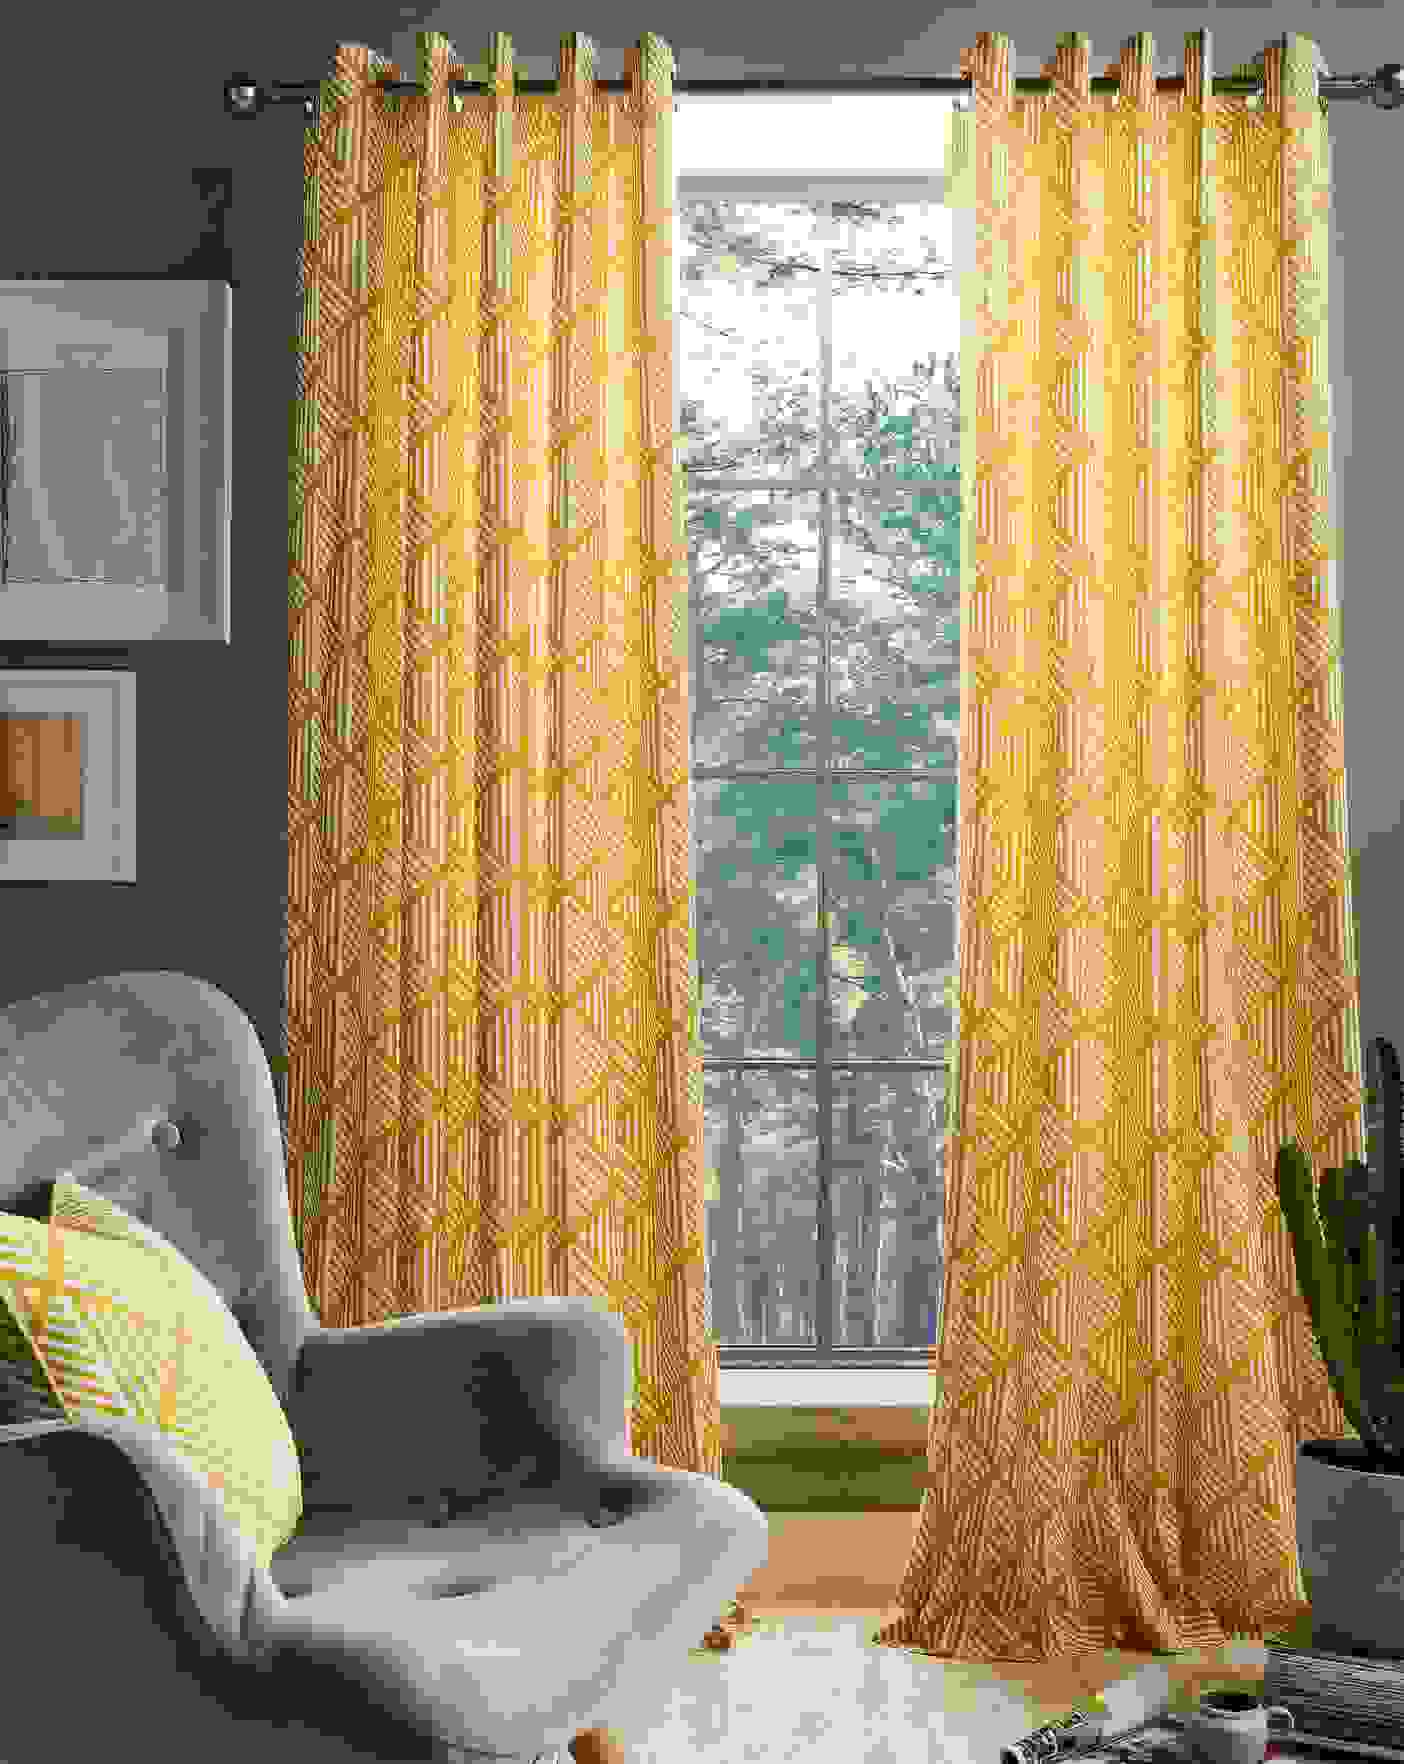 Bold drapes for bold impression | Source: homeessentials.co.uk